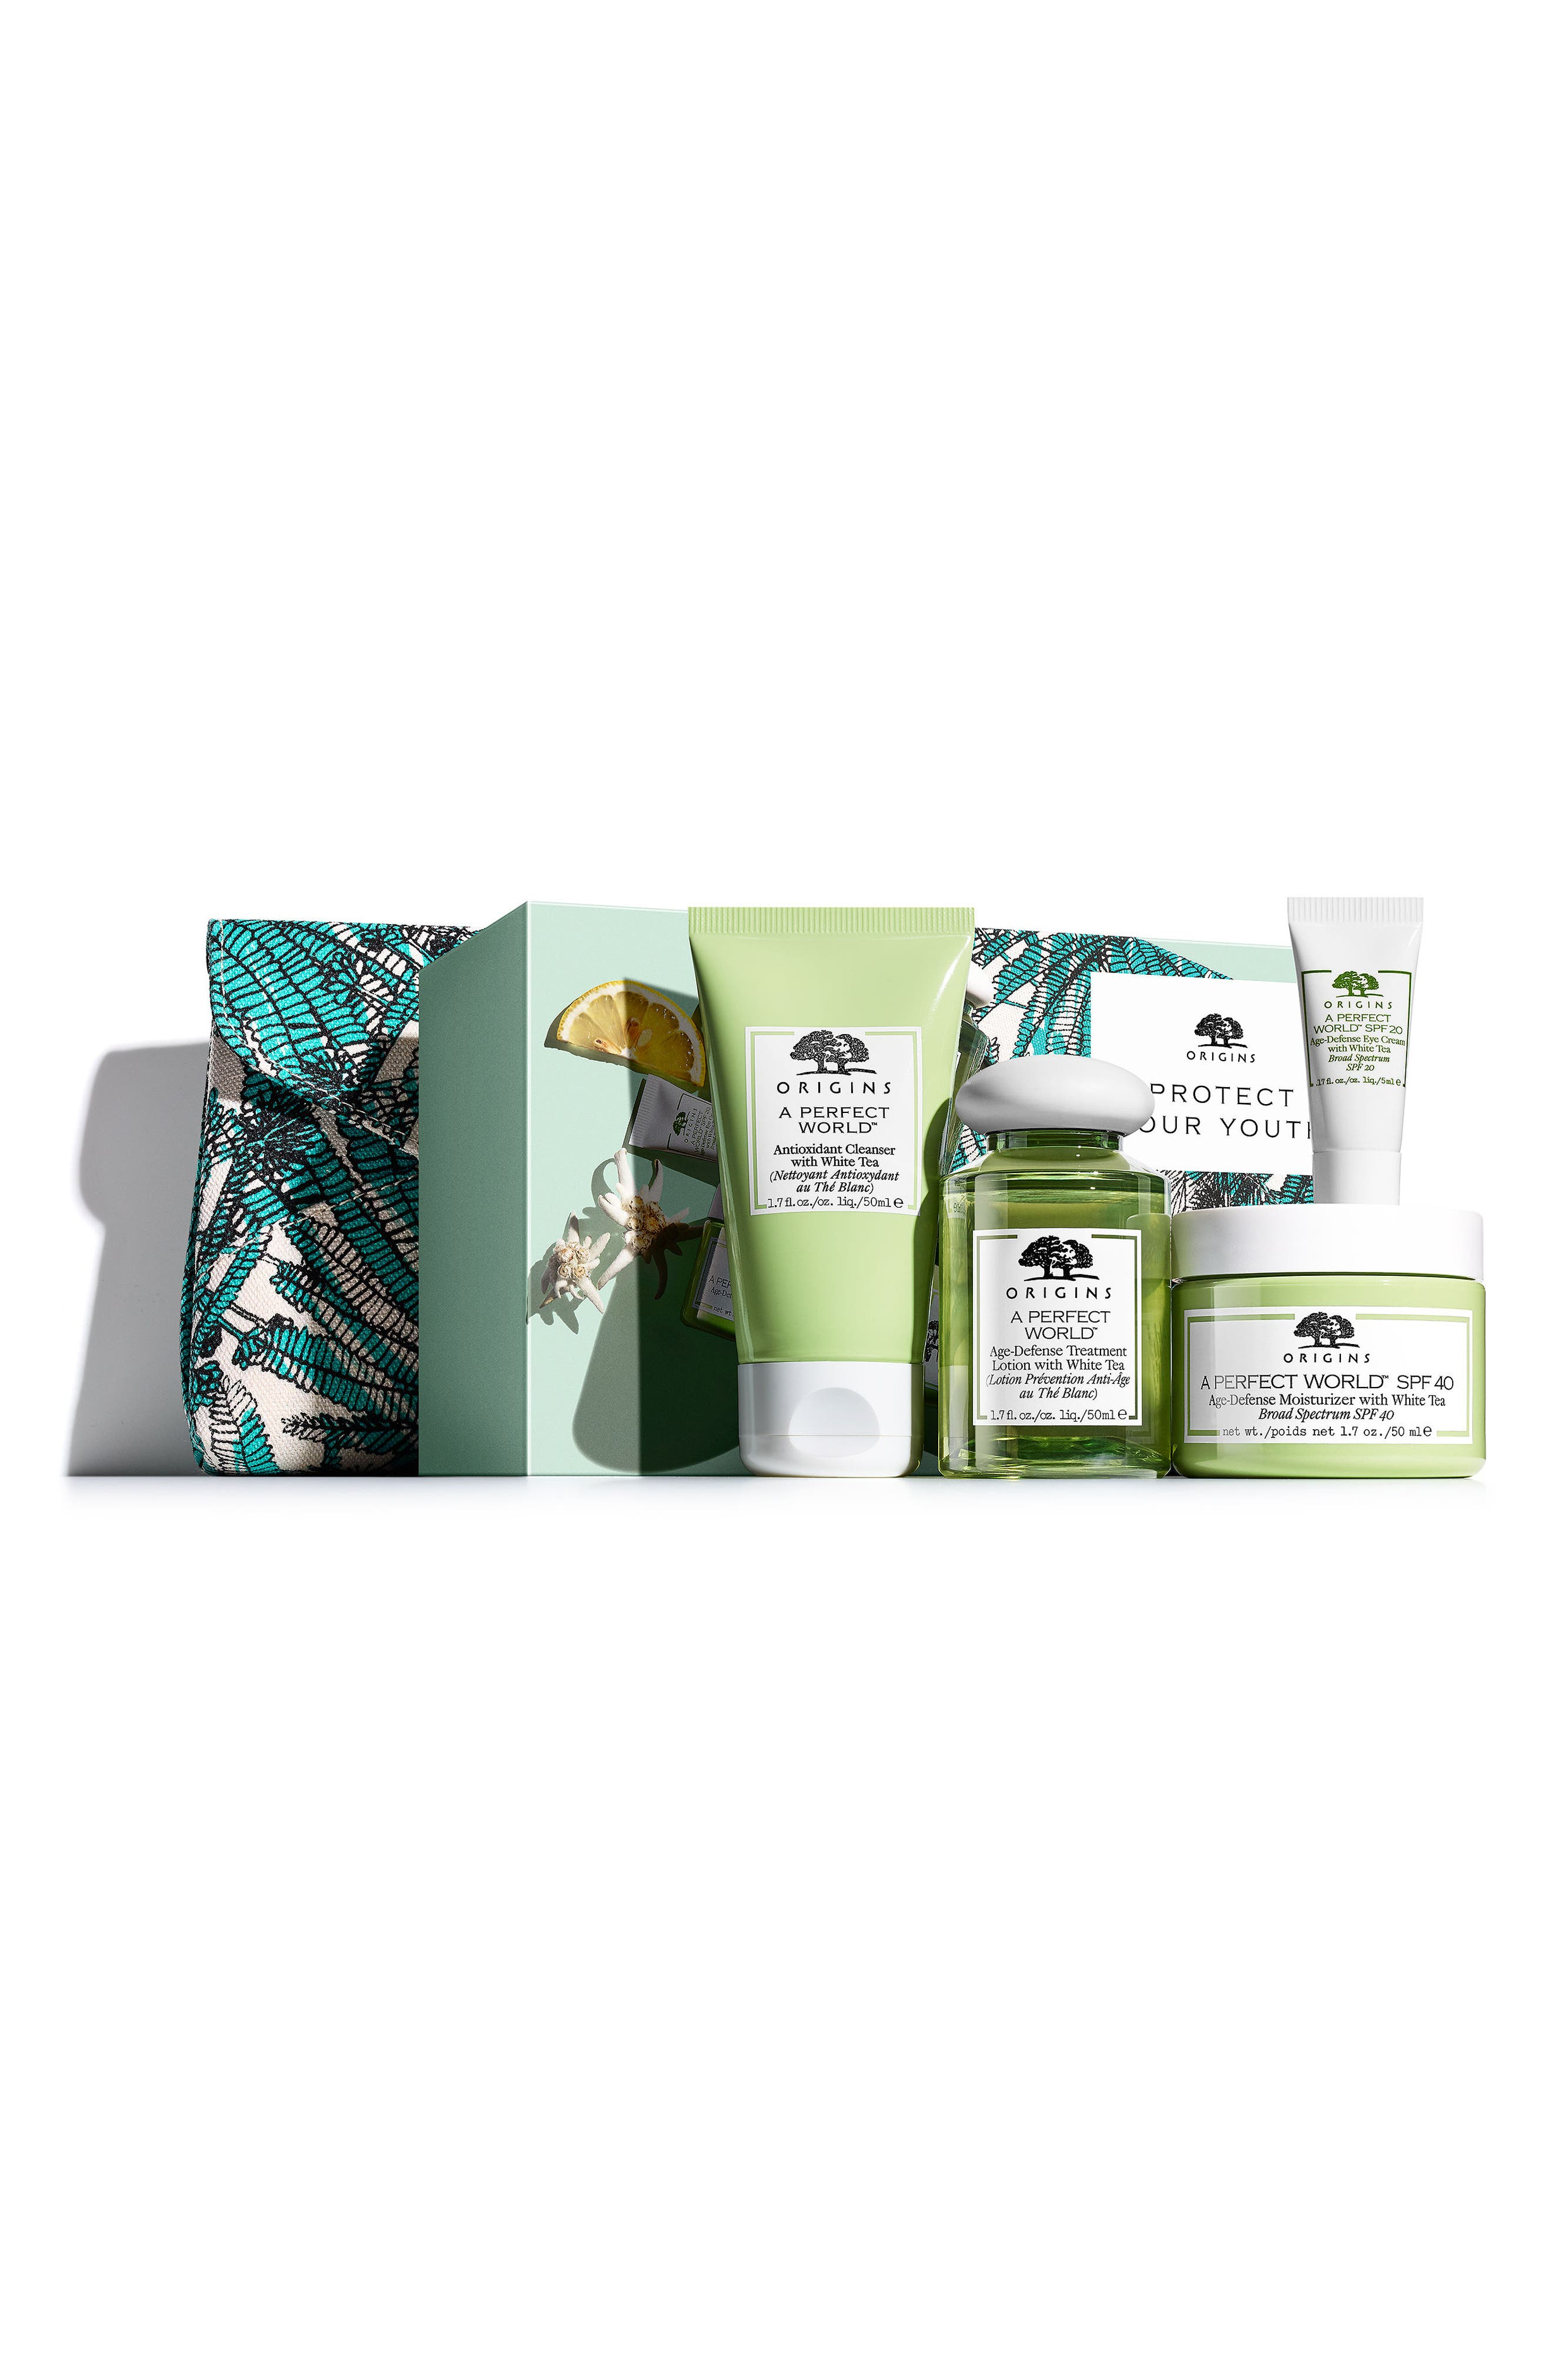 Origins Protect Your Youth Collection ($73 Value)